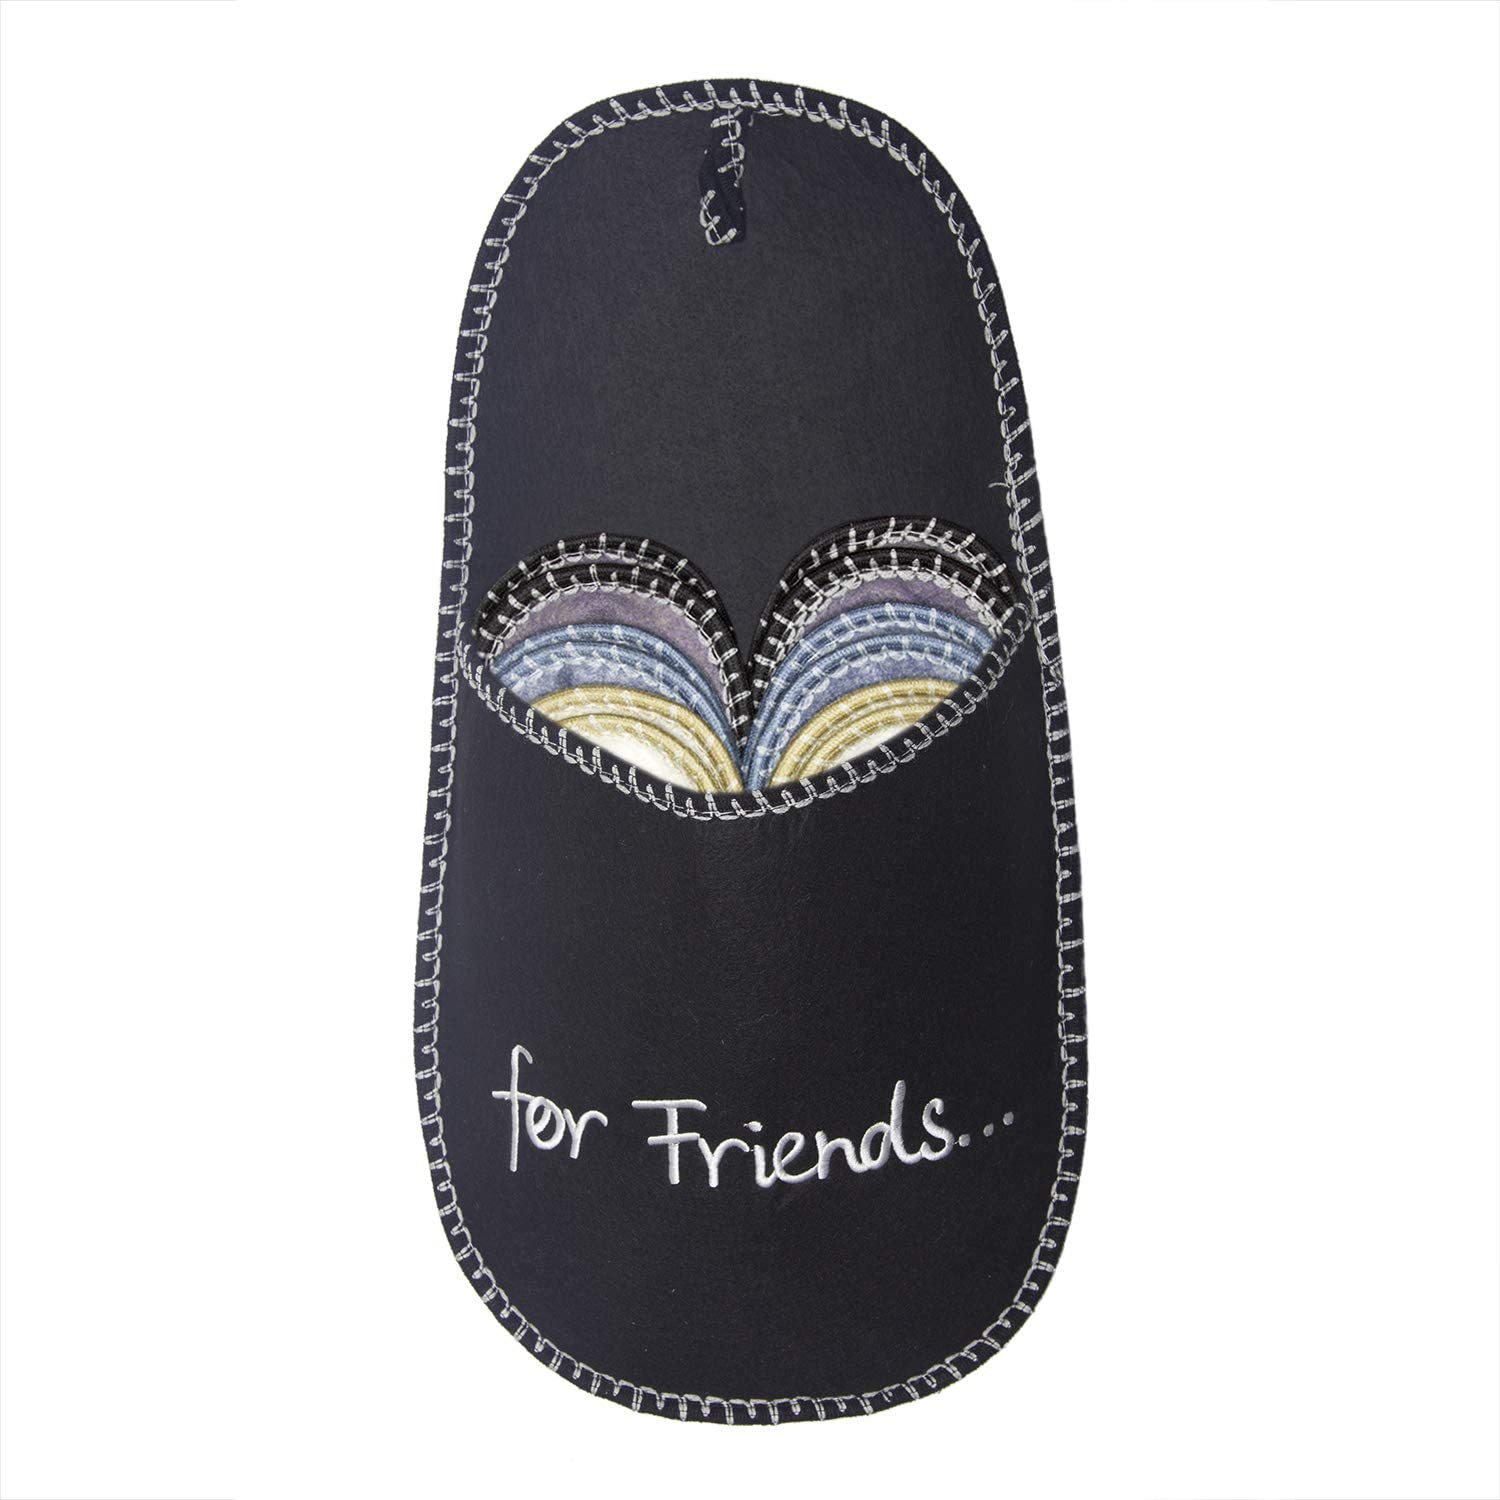 SLIPPERTREND Fleece Felt Close Toe 6 Pairs for Friends Non Slip Indoor Family House Guest Slippers Set for Shoeless Home